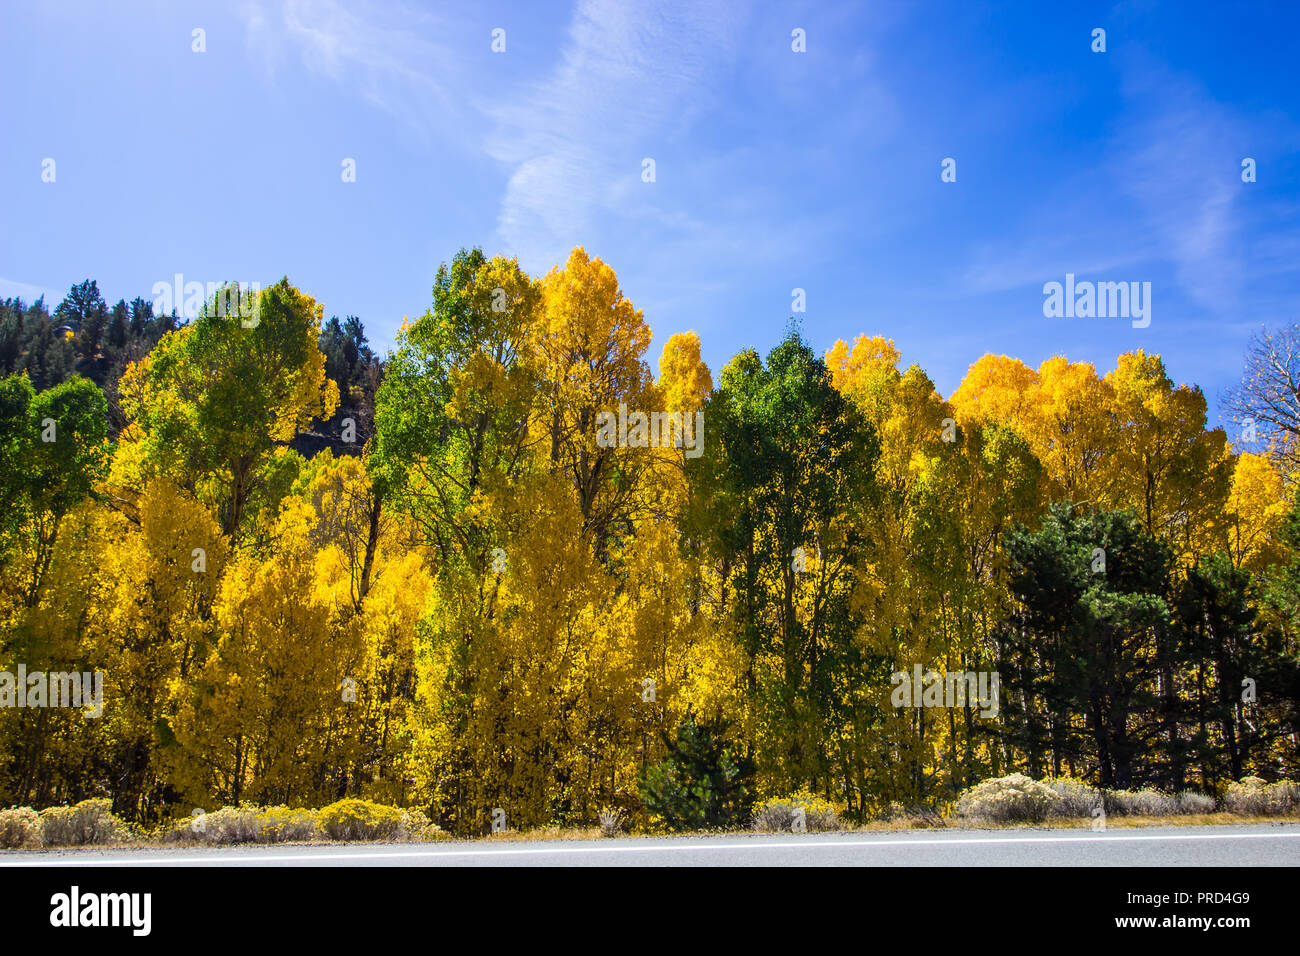 Falls Changing Colors For Trees In Mountains - Stock Image